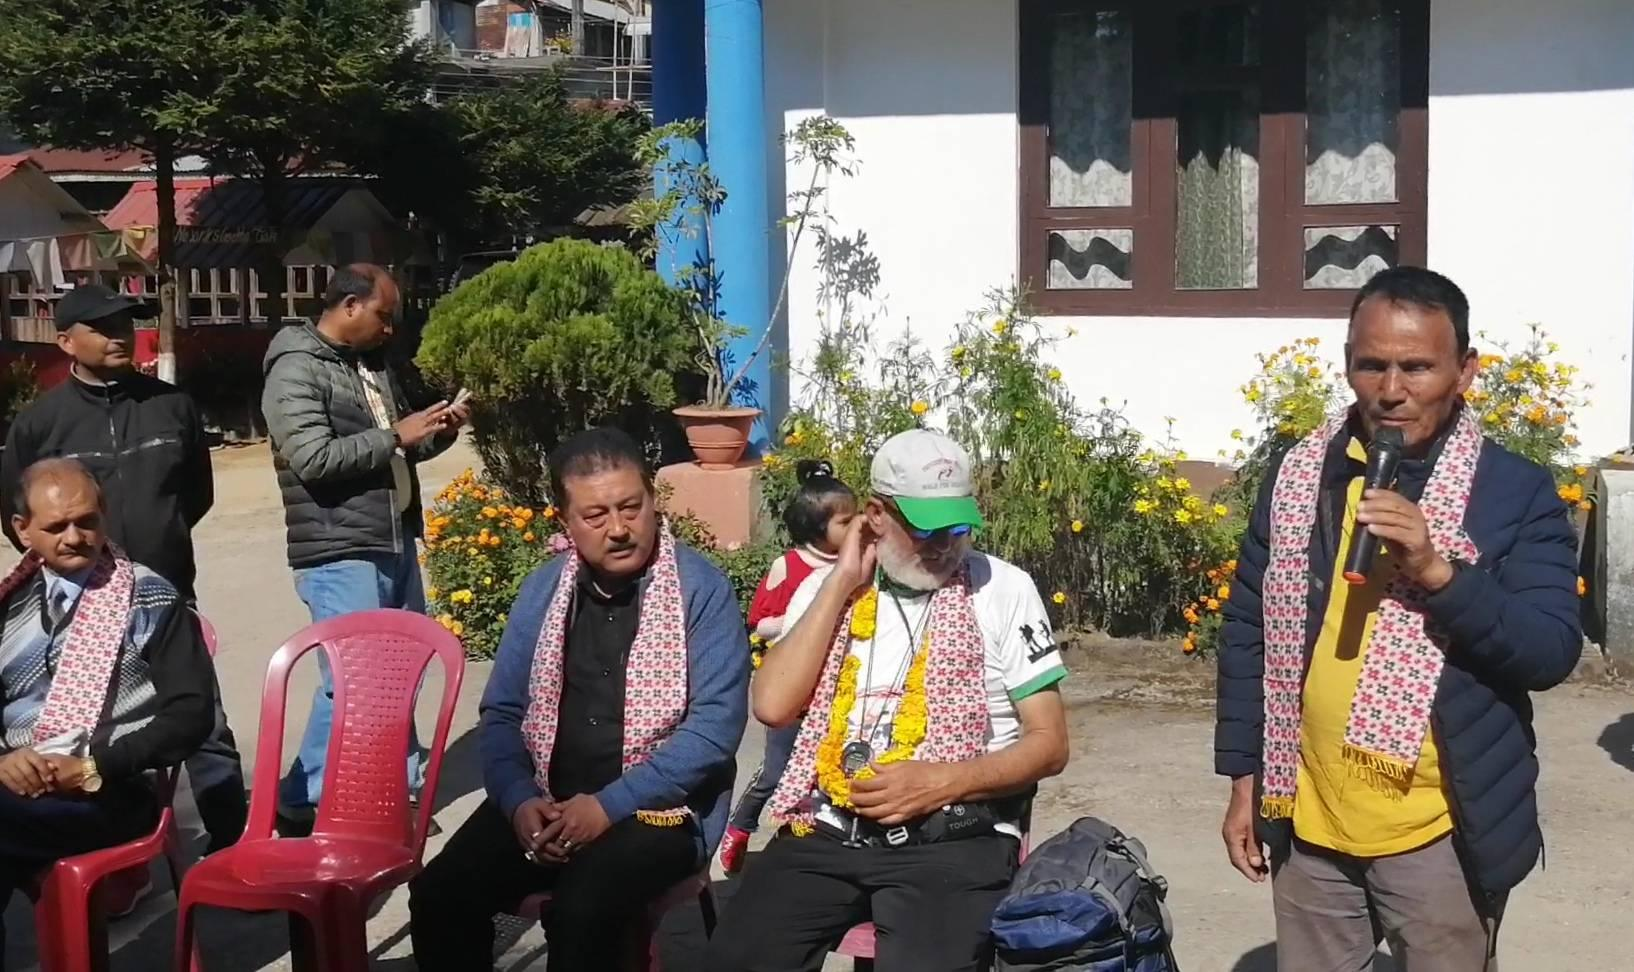 mirik municipality chief LB Rai welcoming Nepali hikers from dharan pradeshportal.com birat anupam